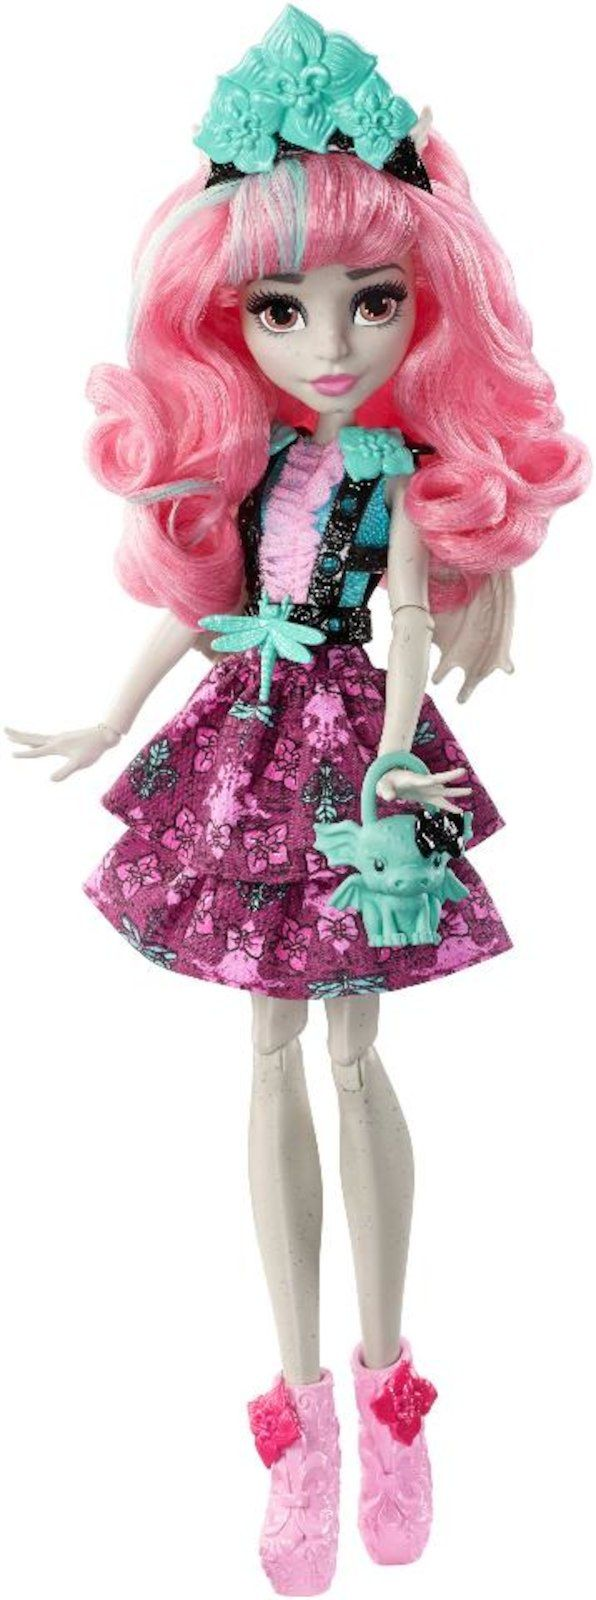 Monster High Party Rochelle Goyle Booquets Fashion Doll